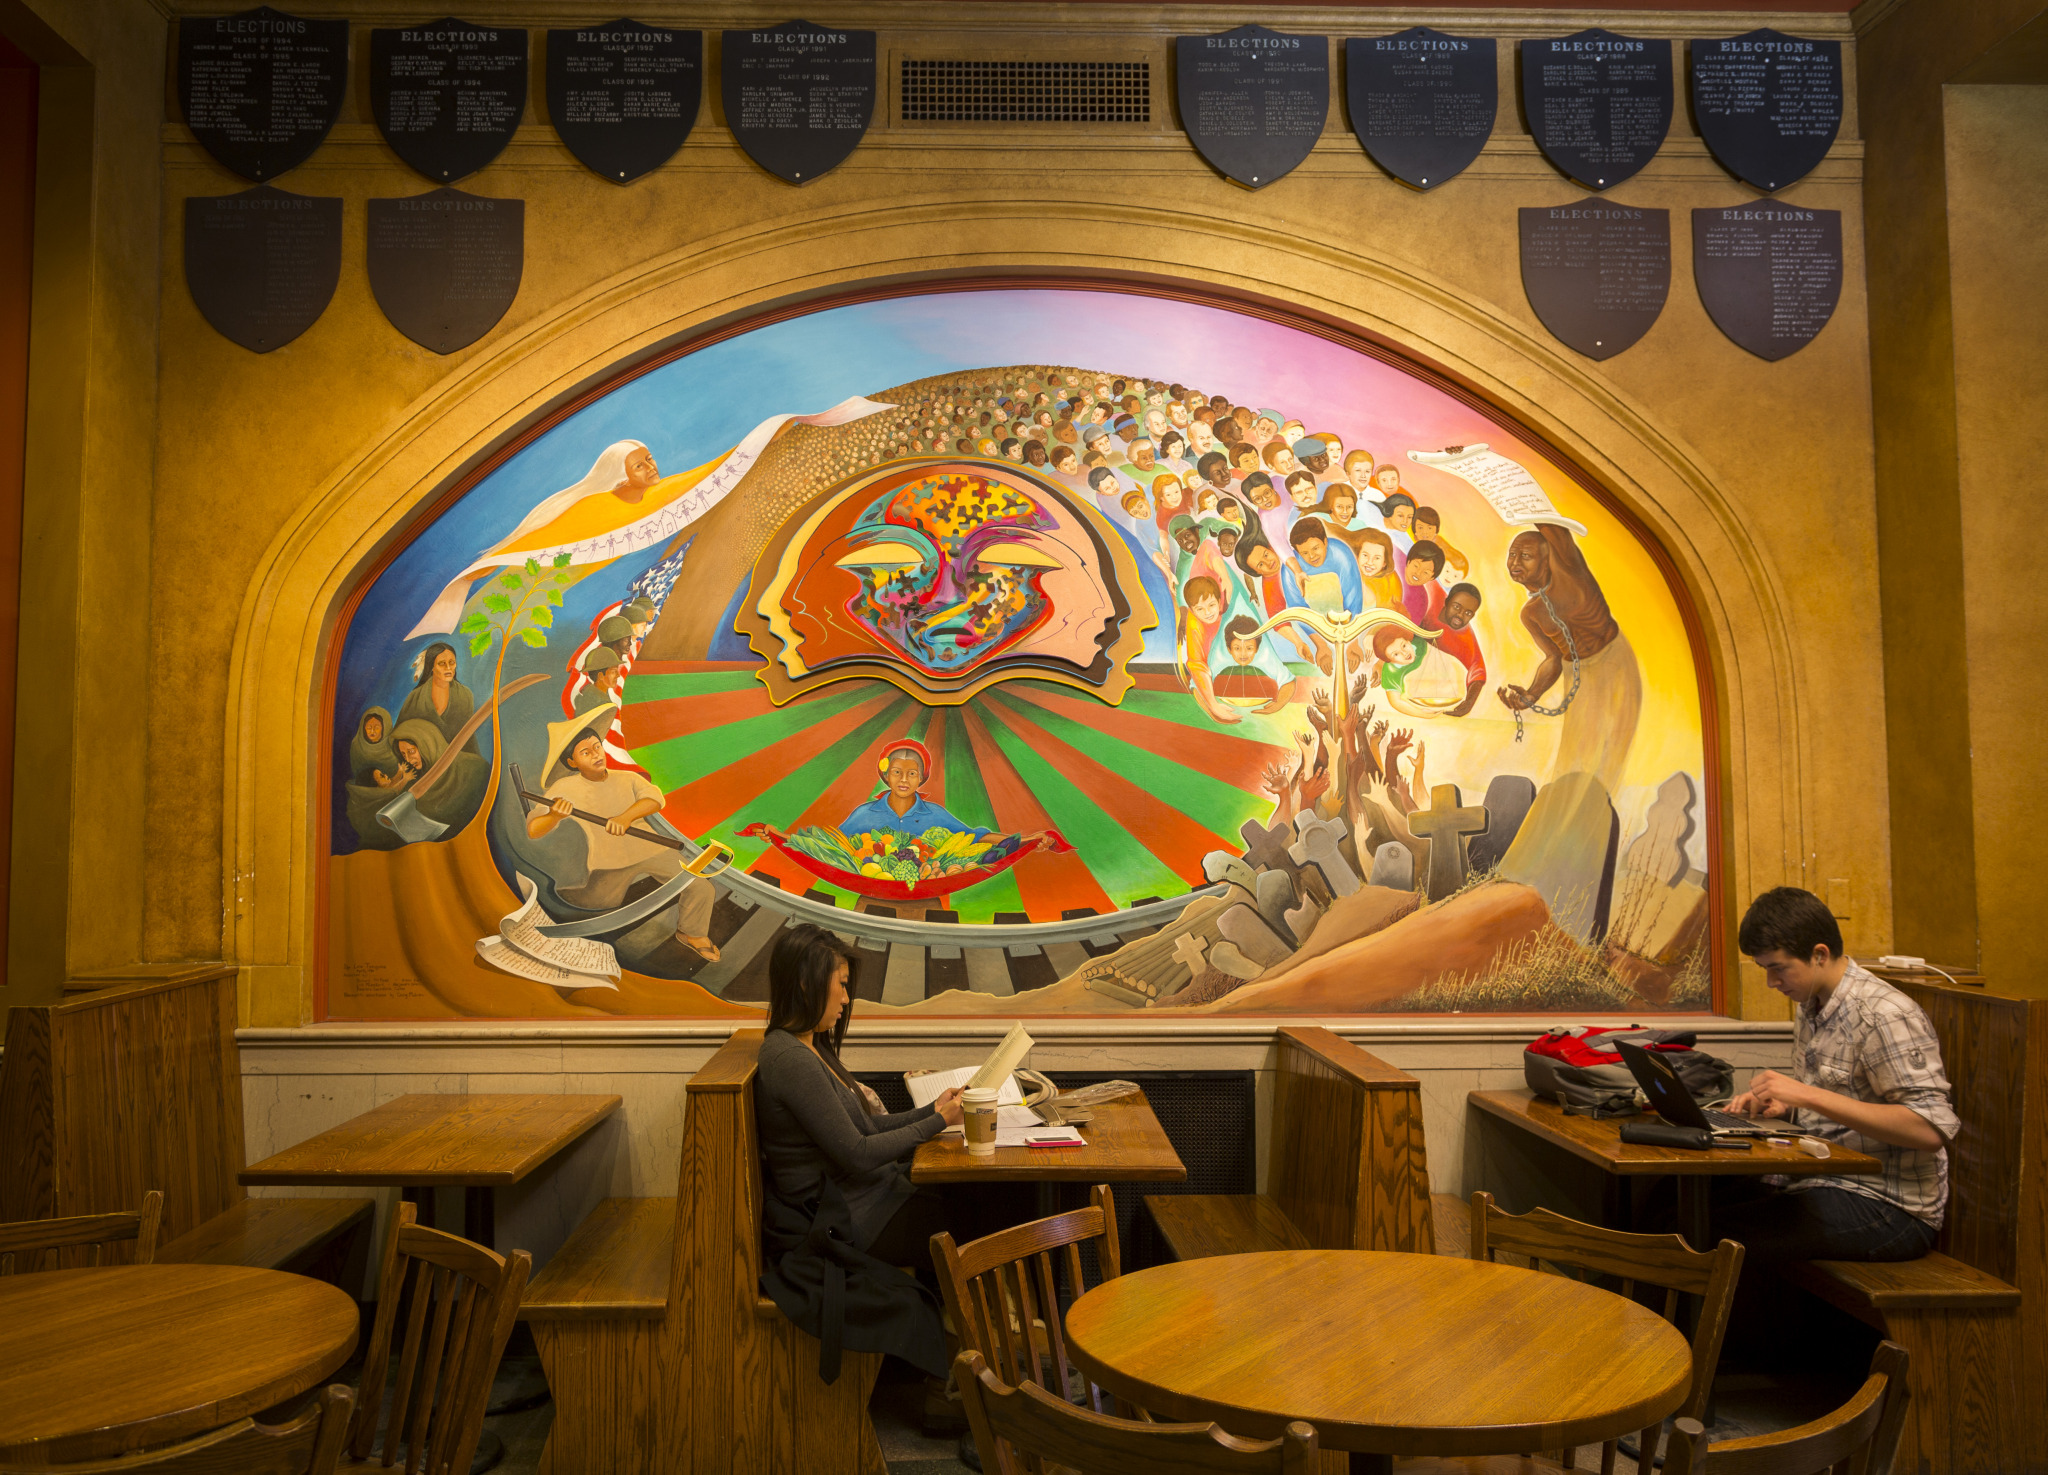 One of the murals in the Gekas Commons room of Memorial Union. Photo Courtesy of: Andy Manis